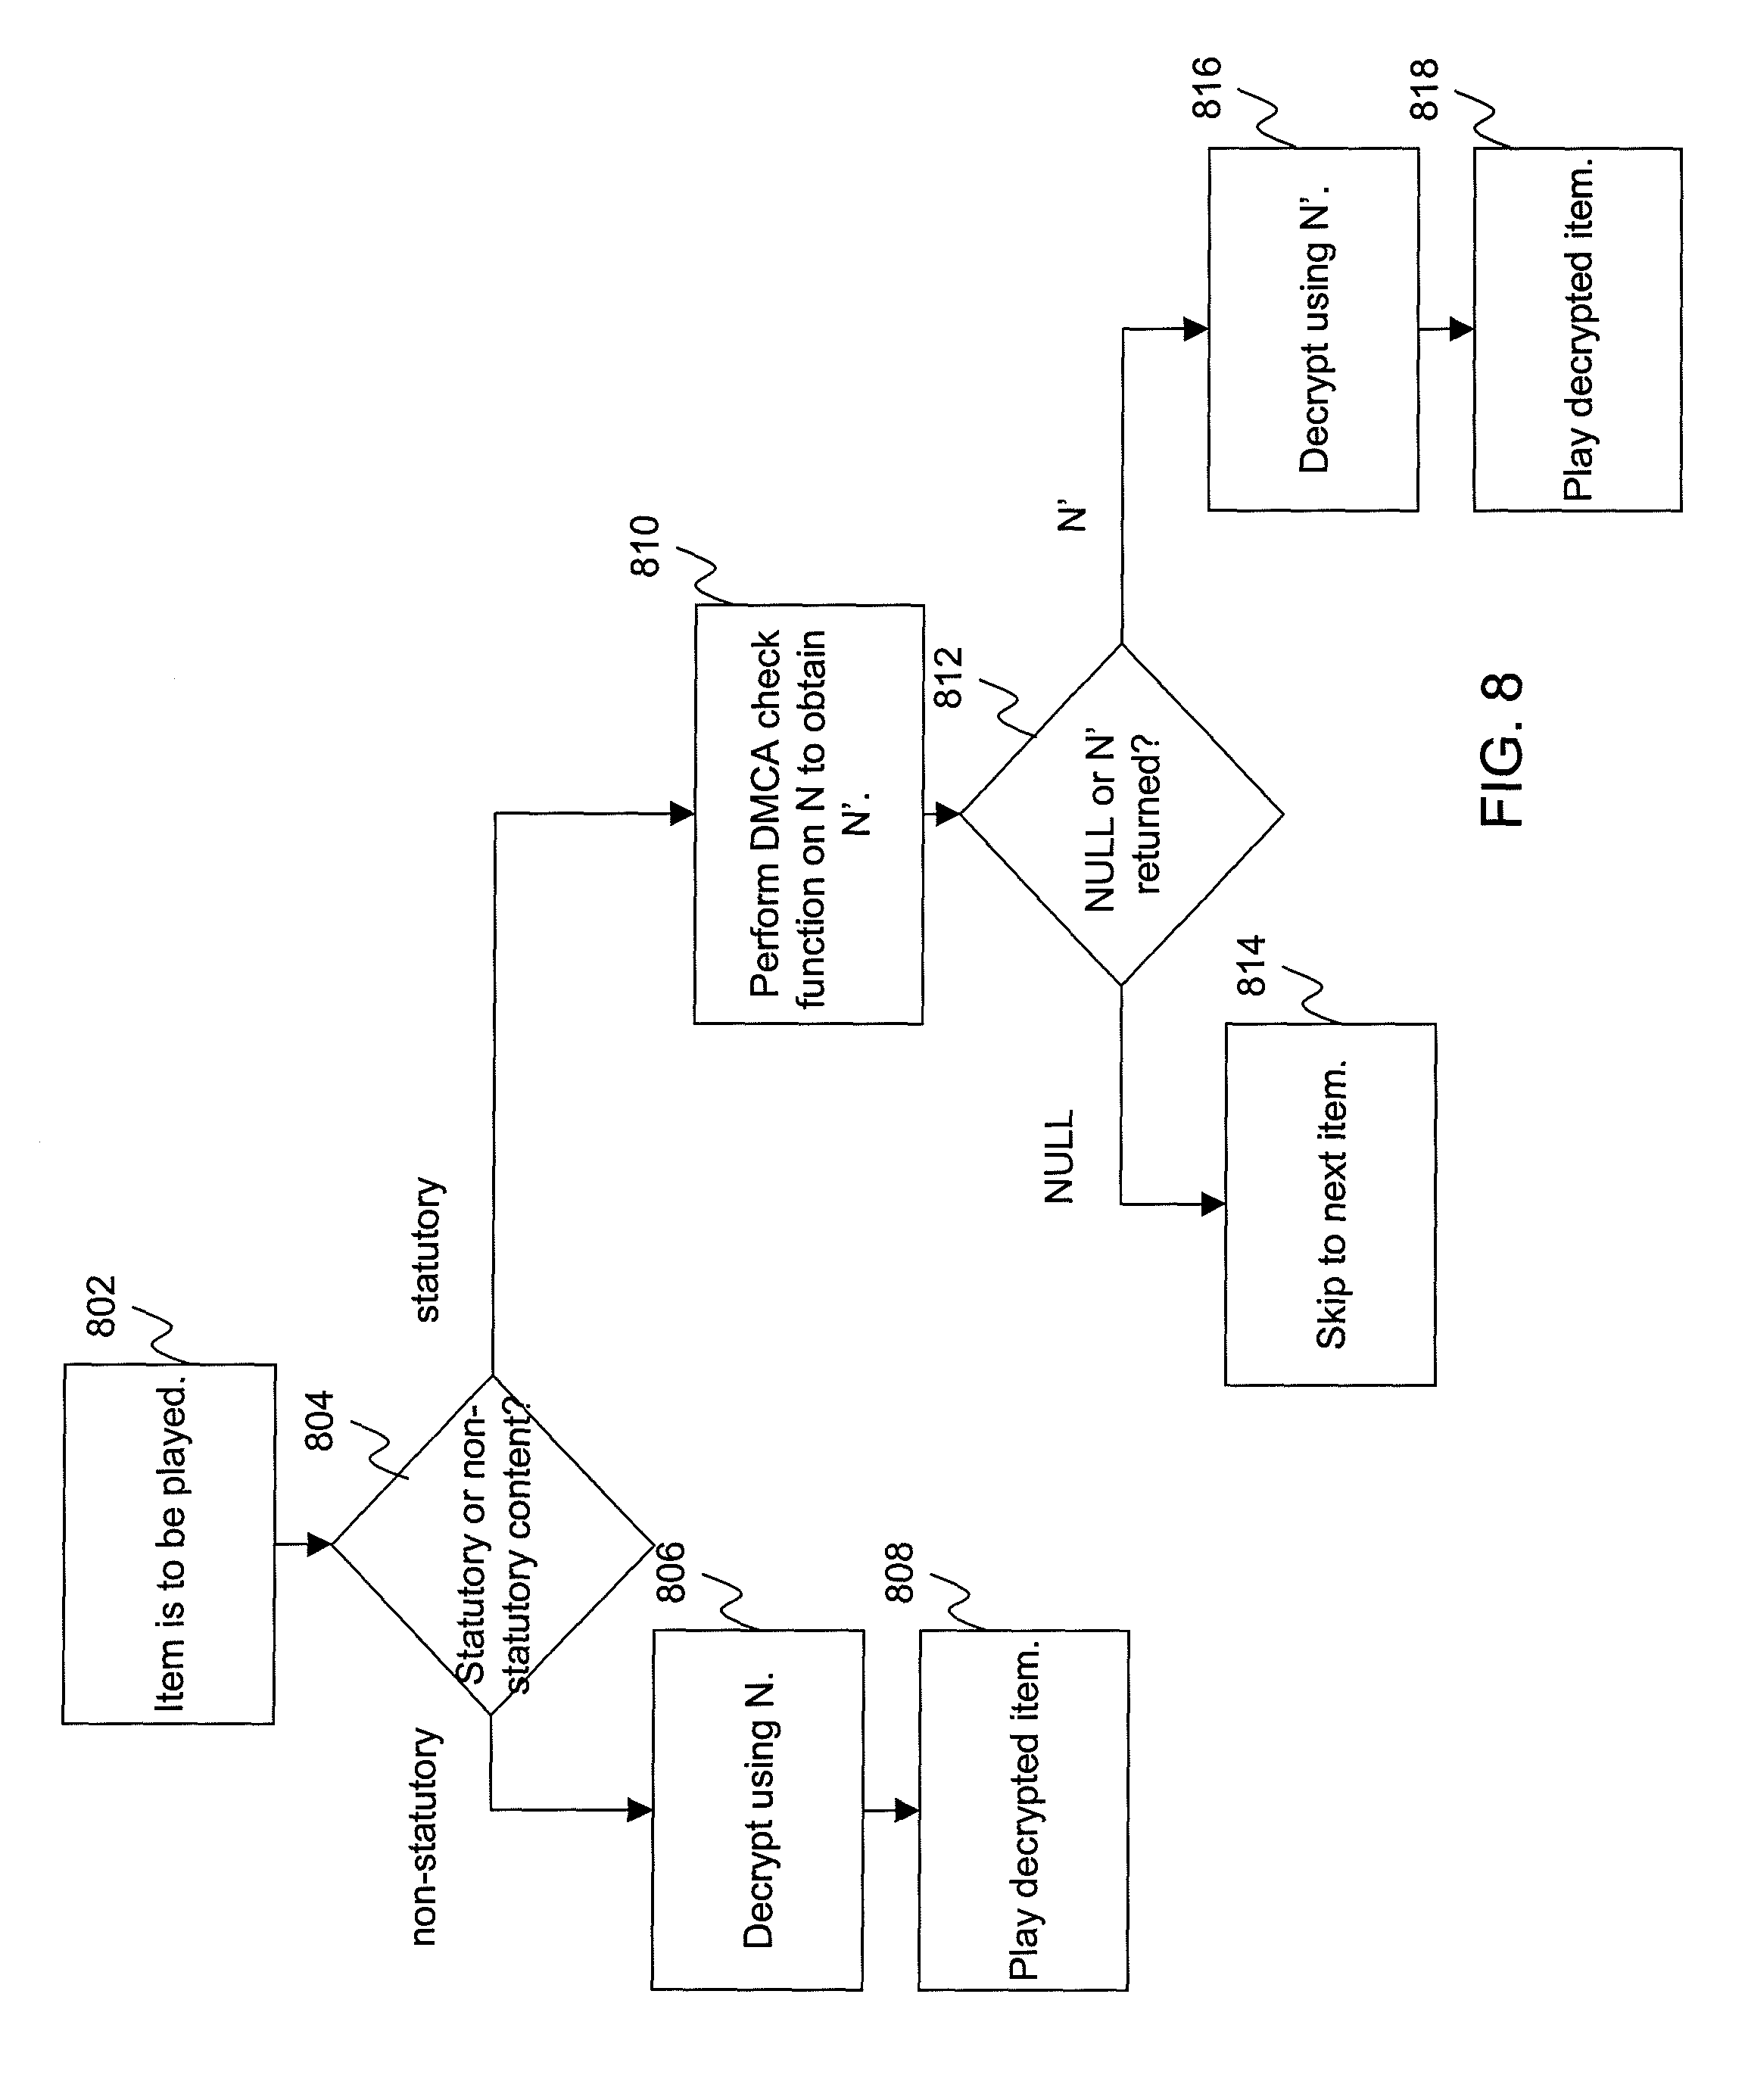 Patent Us 8763157 B2 Led Tv Schematic Lcd Interconnect 0 Petitions